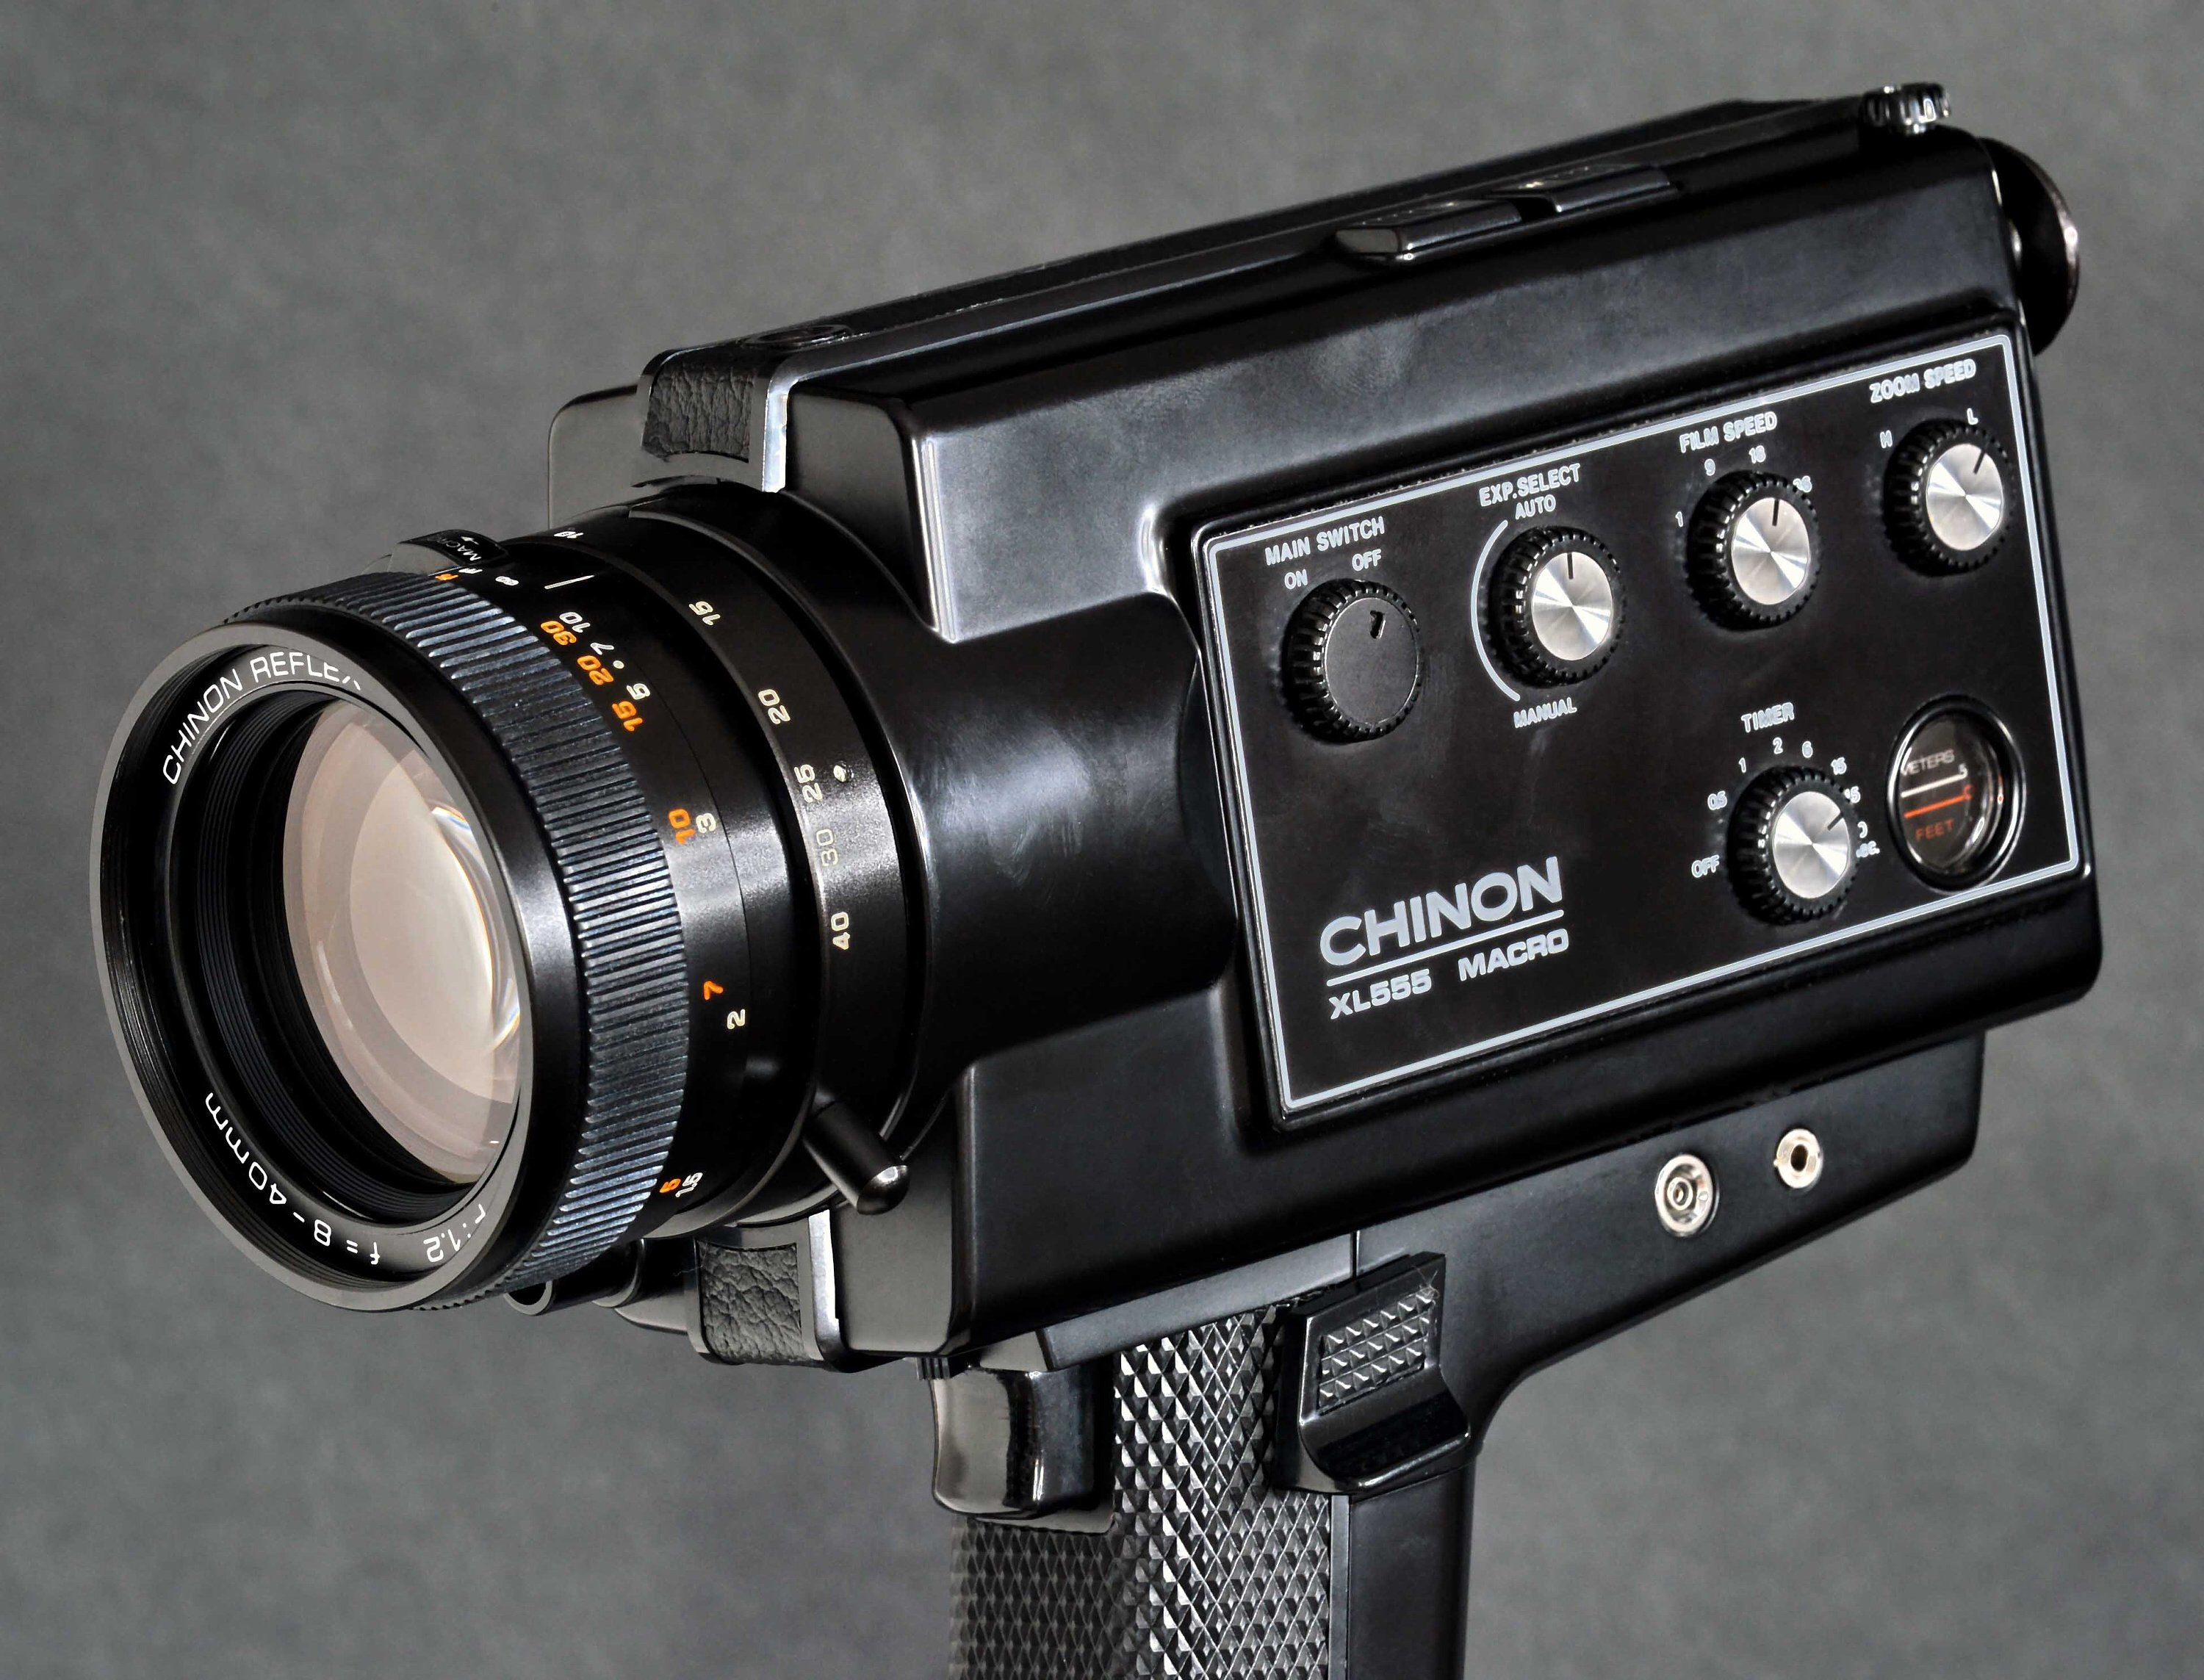 Excited to share this item from my #etsy shop: Chinon XL 555 Super-8 Zoom Movie  Camera w 8-40mm f/1.2 Macro Reflex Zoom Lens Pro Version MiNTY !